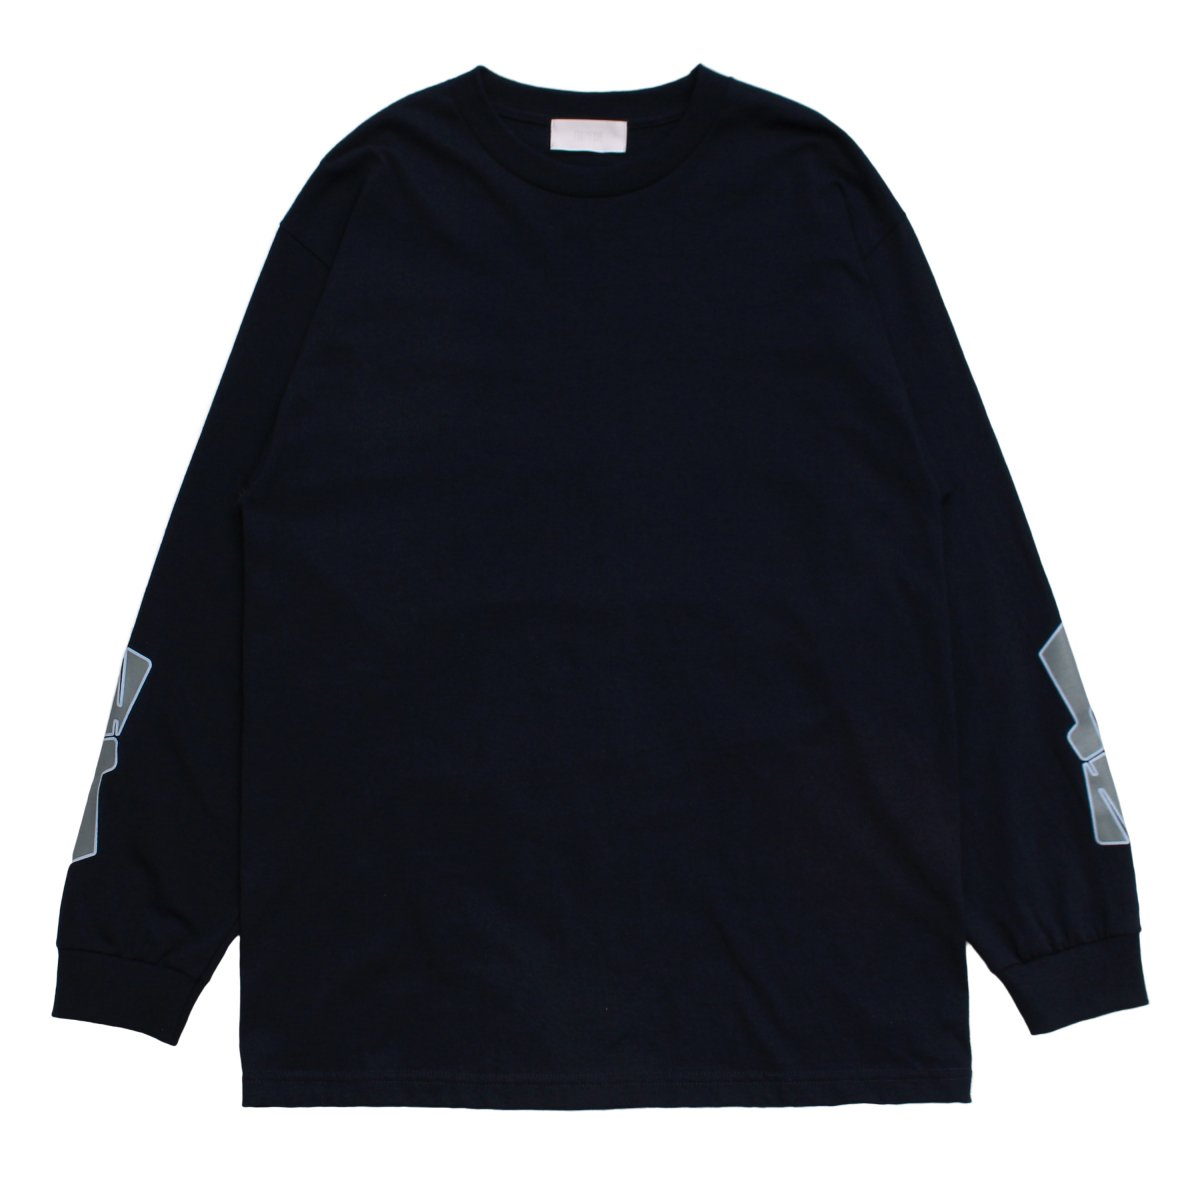 NUMBERRING LOGO L/S TEE 【NAVY】